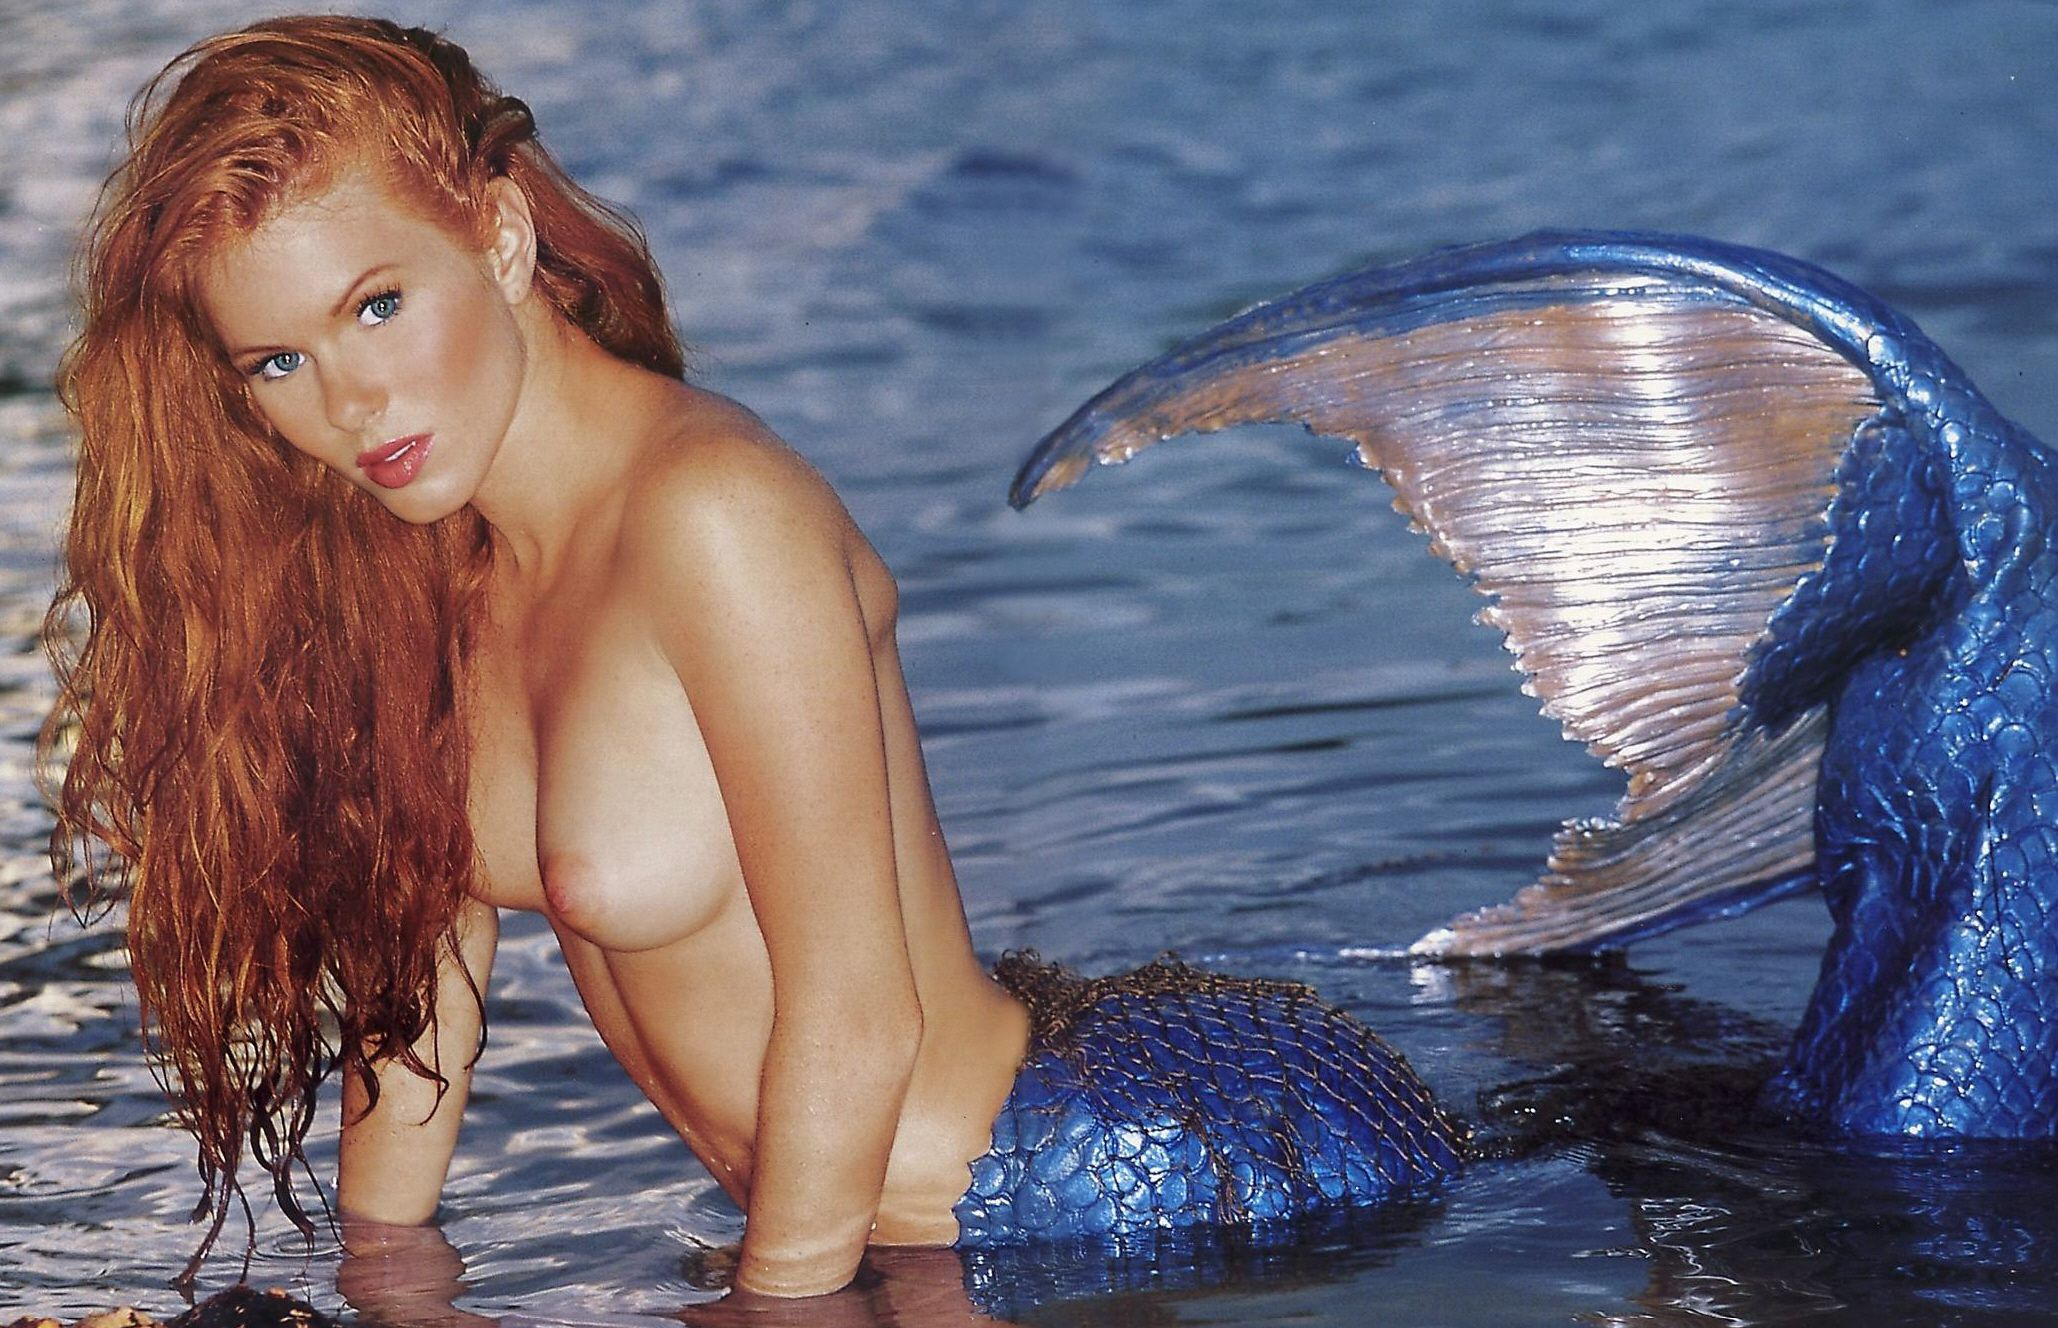 Naked mermaid pics exposed tube